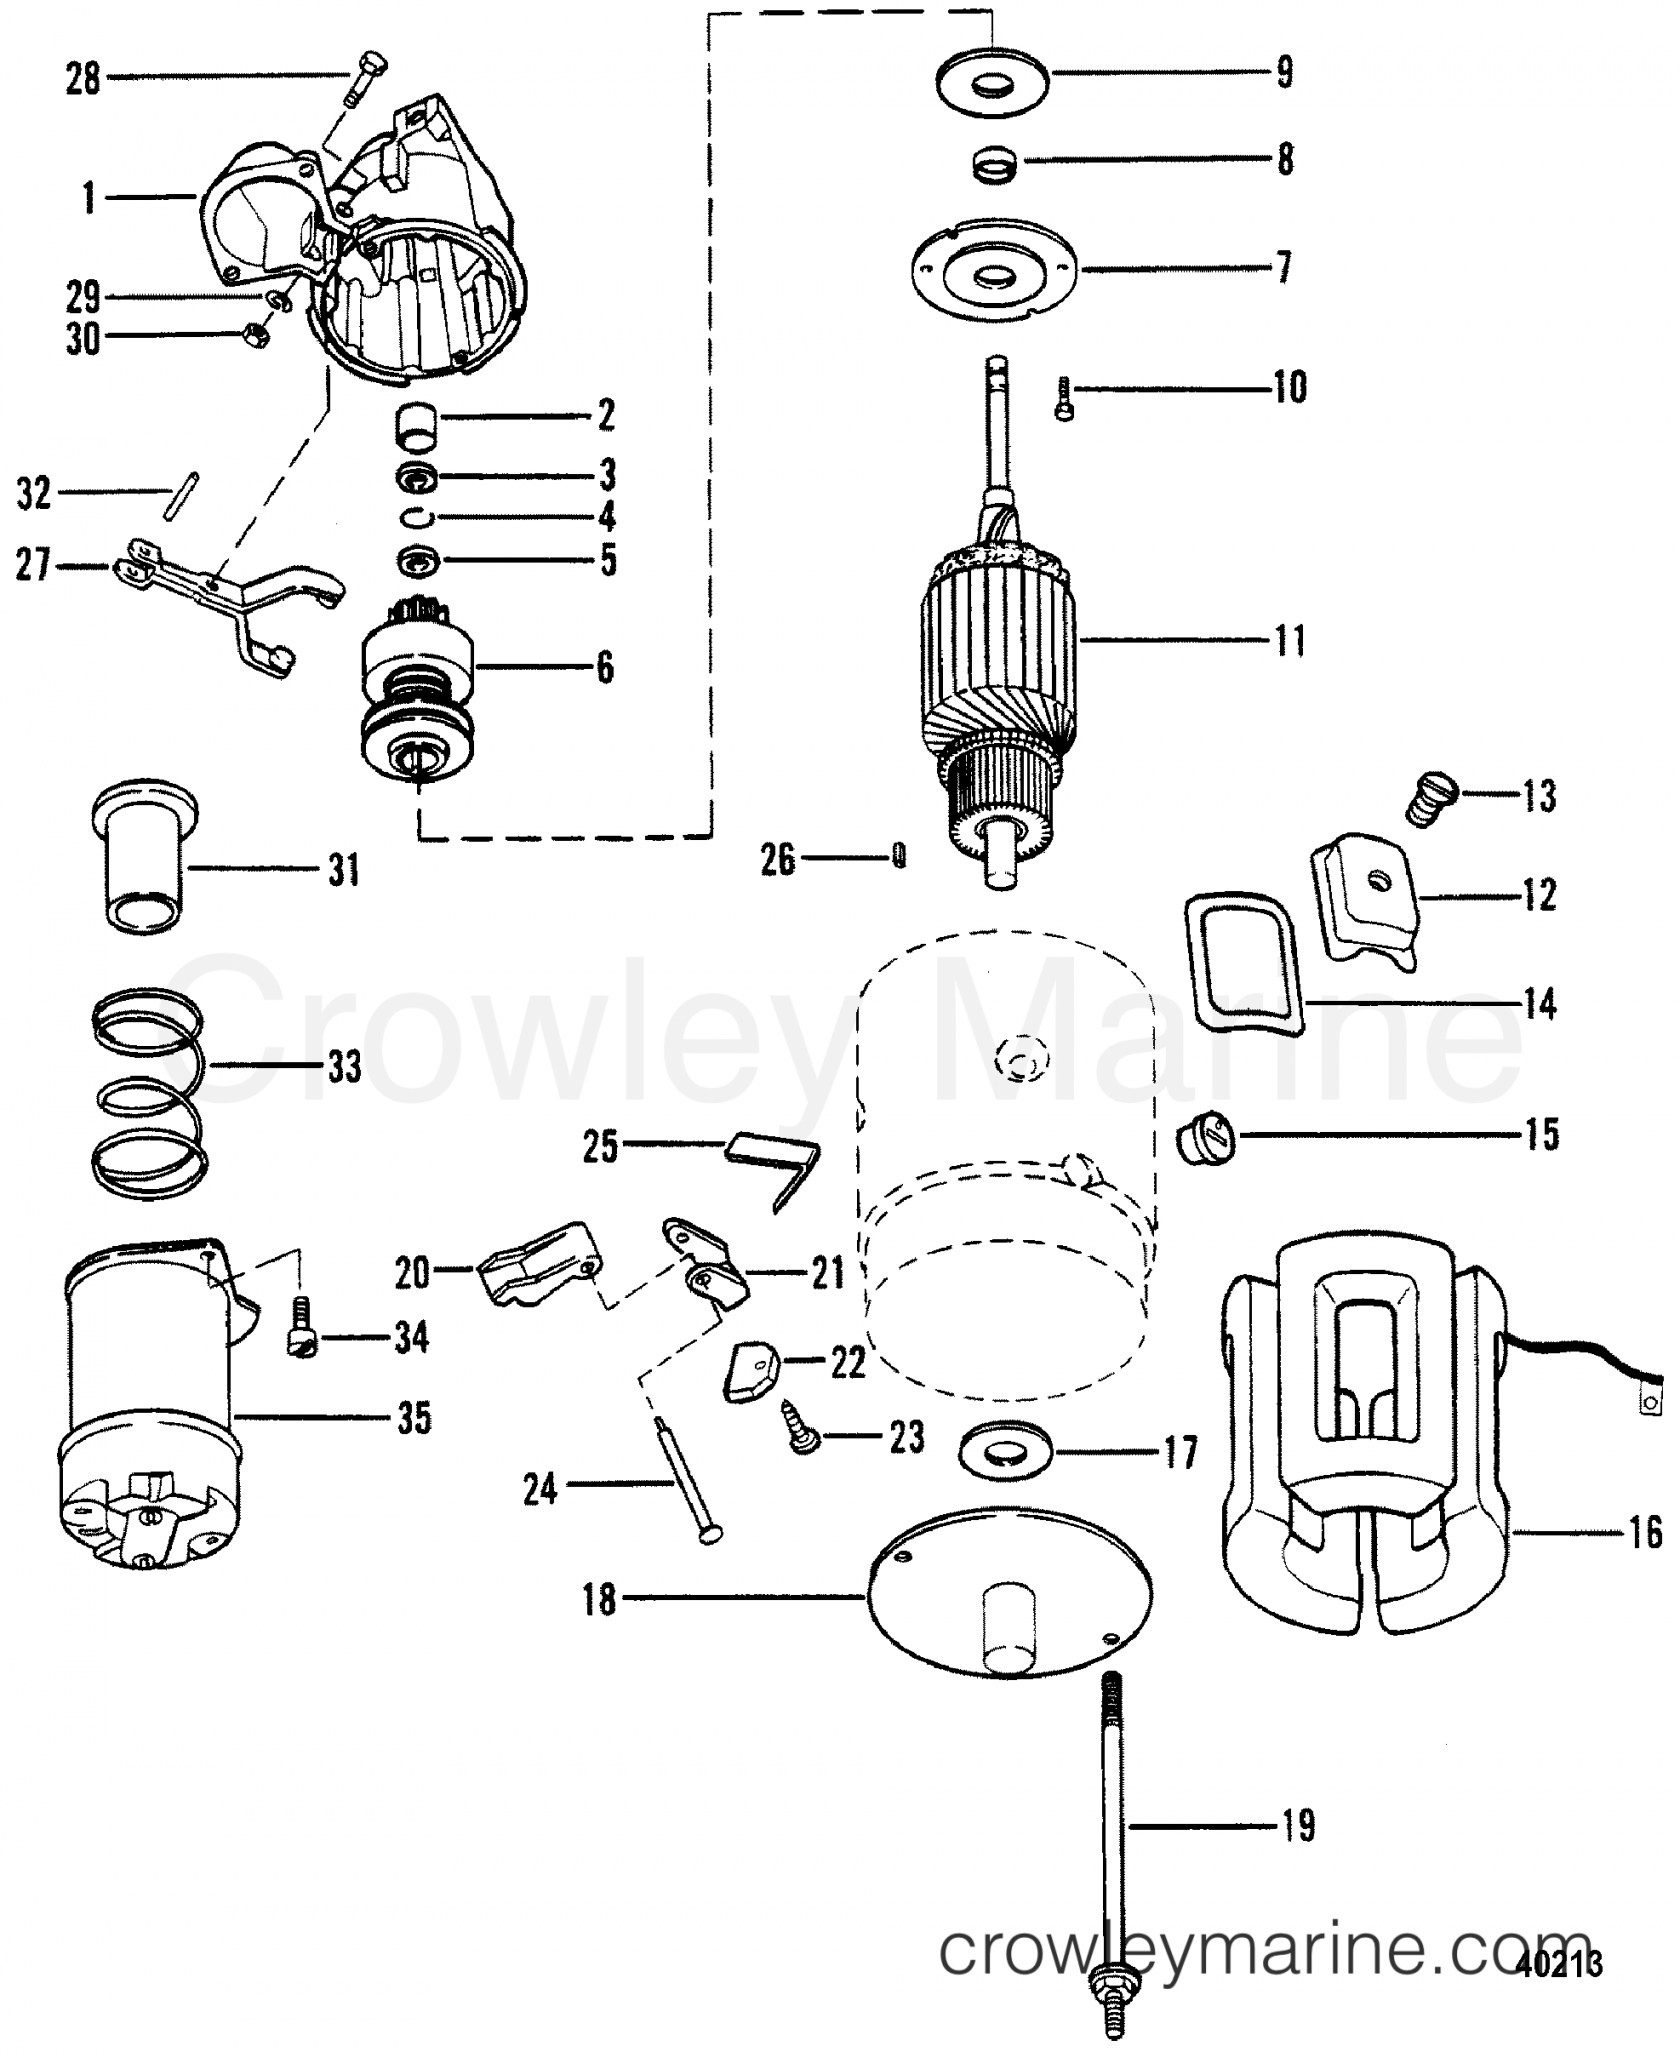 Electric Motor Drawing At Free For Personal Use 220v Well Pump Wiring Diagram Download Diagrams Pictures 1680x2052 Starter Terminals Circuit